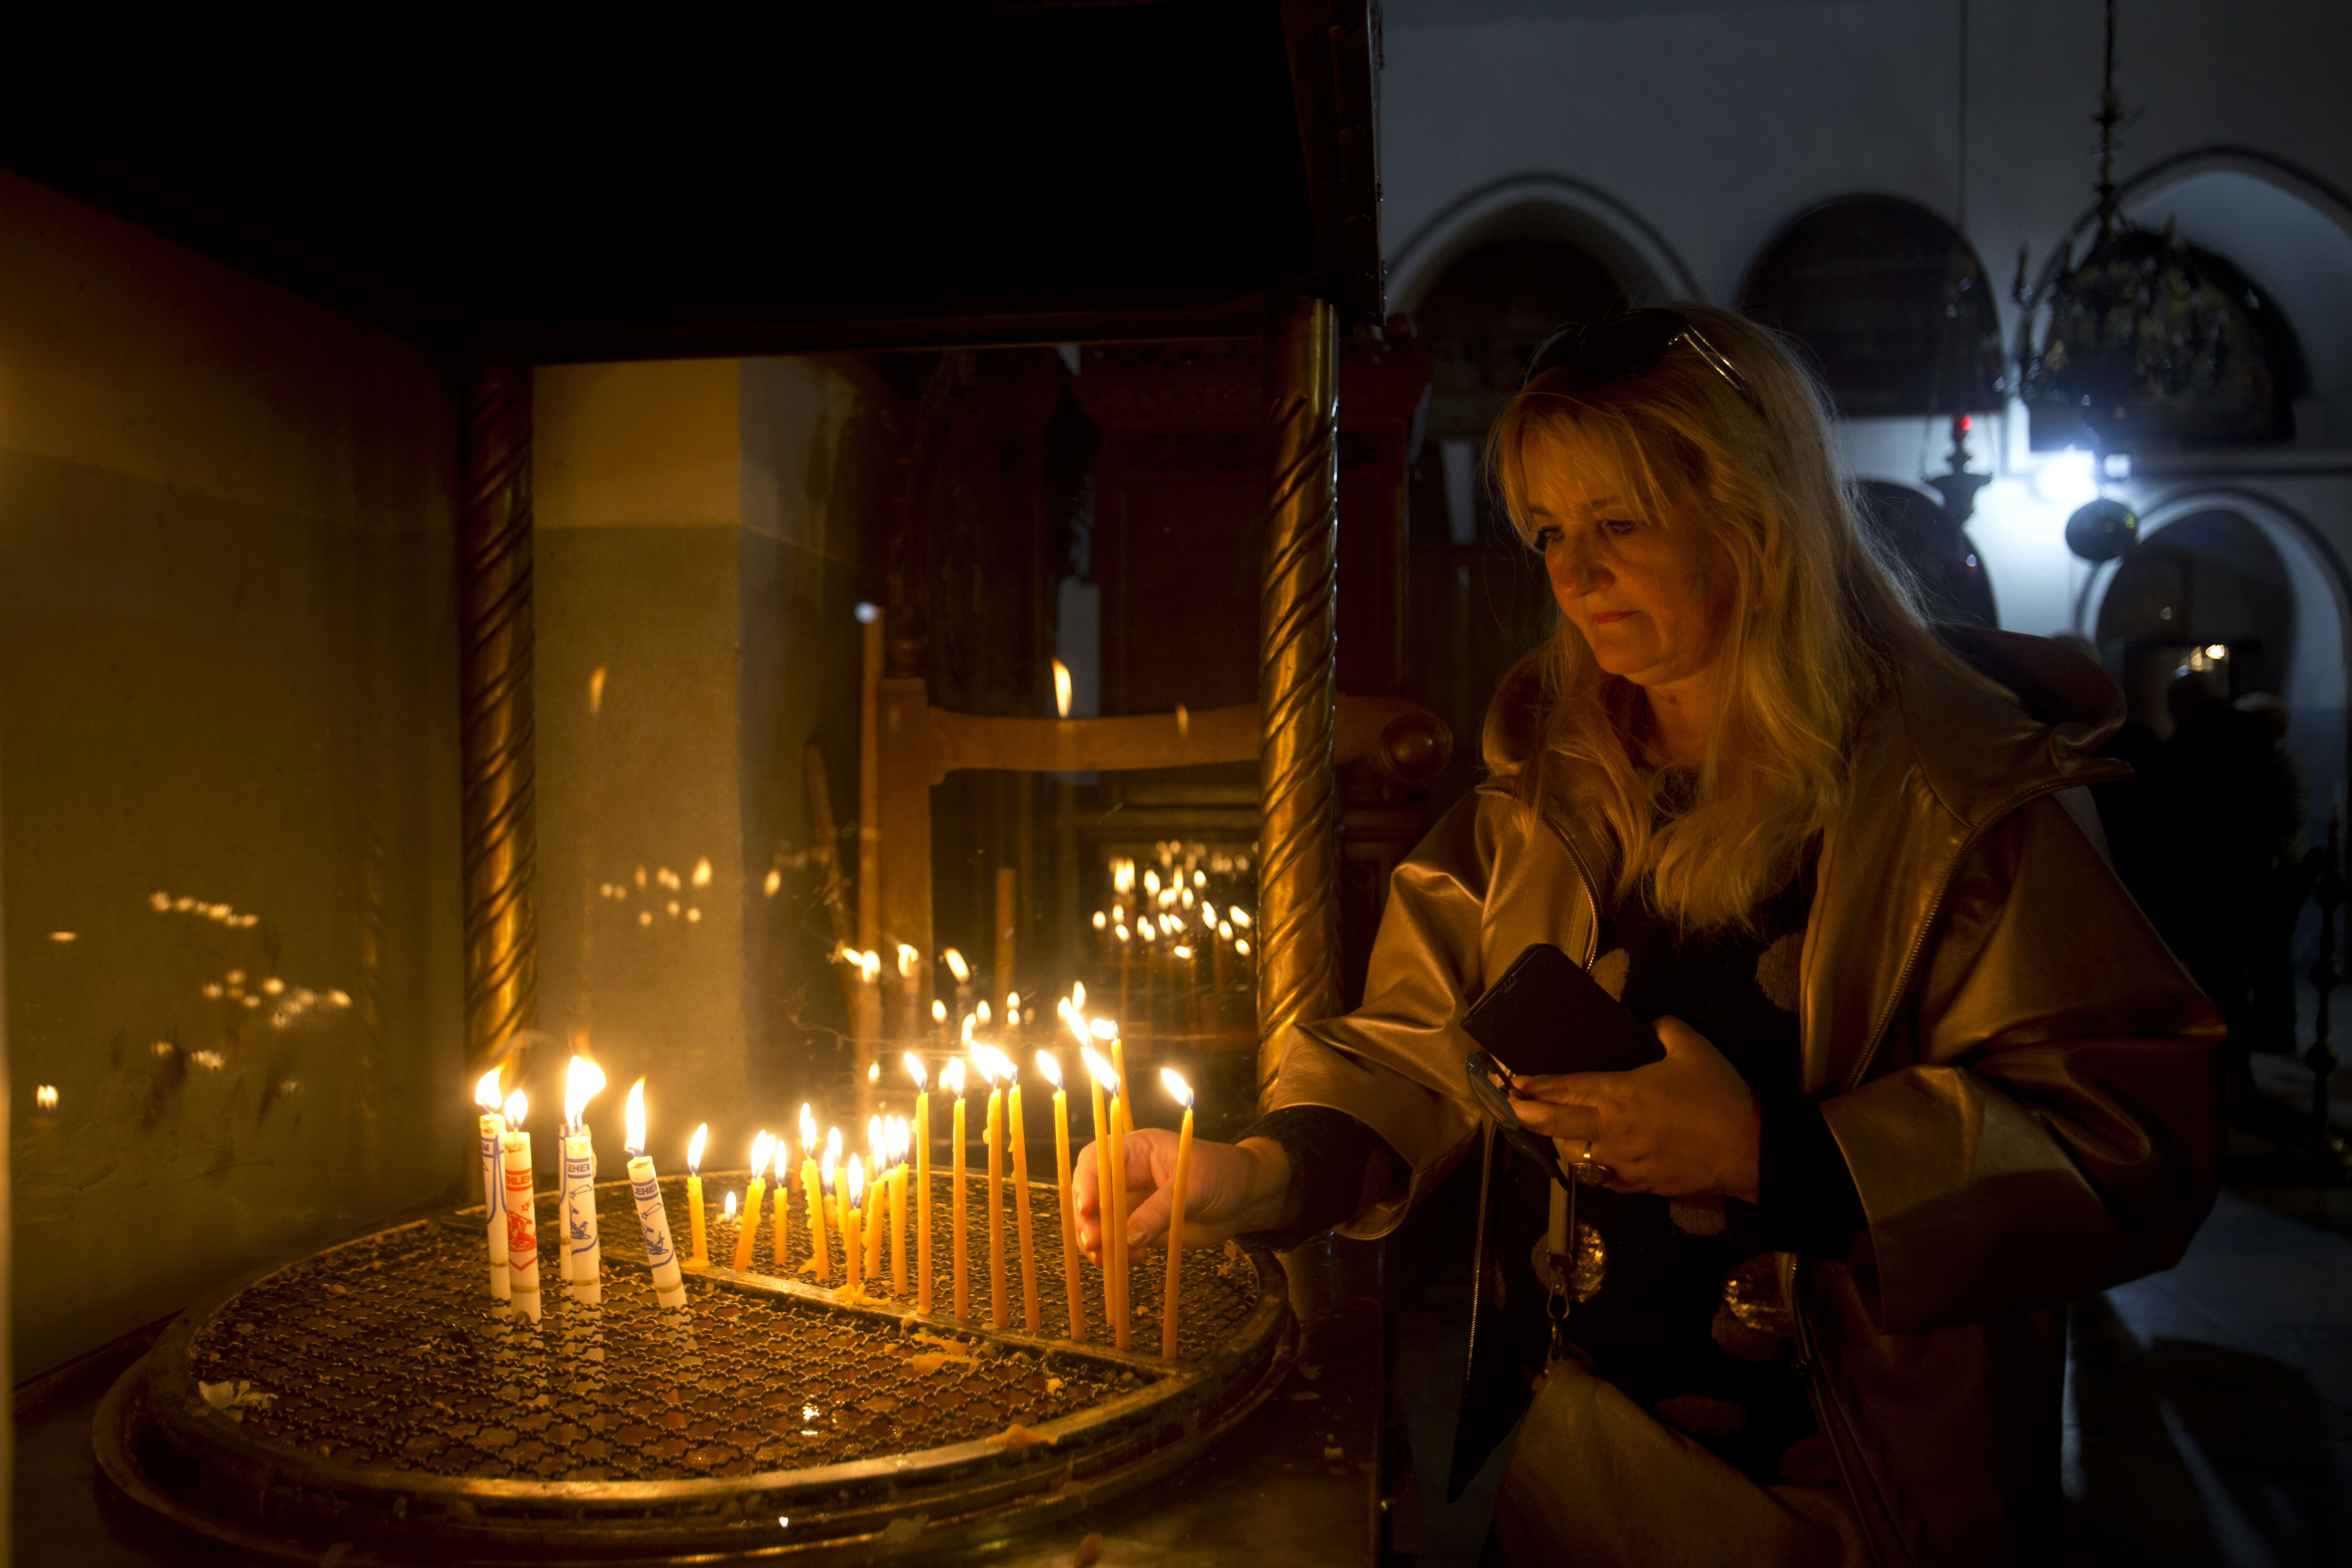 Christian pilgrims head to Bethlehem by the thousands for old-style Christmas